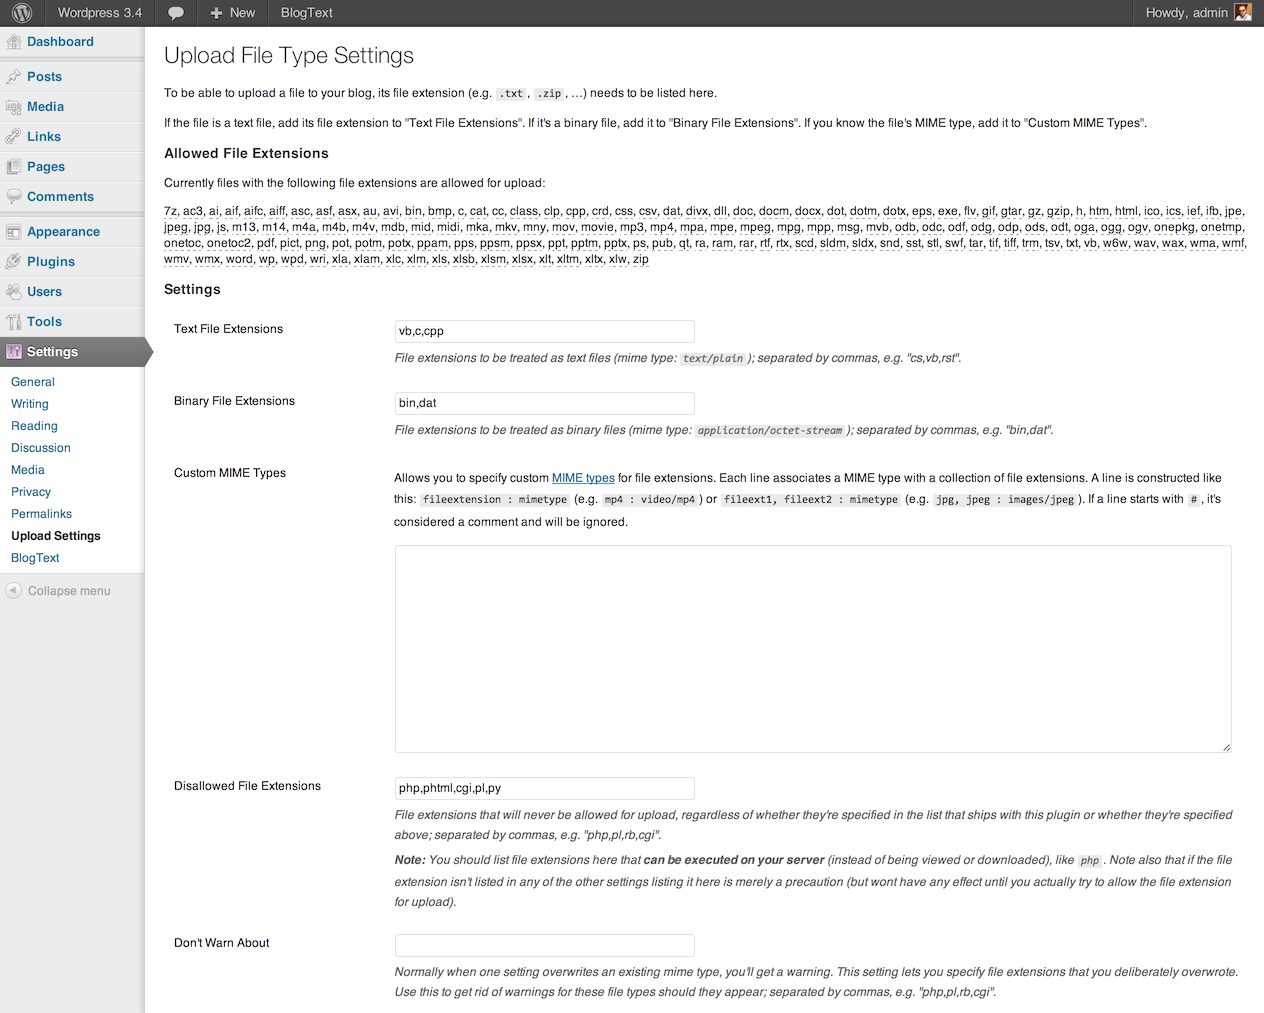 The plugin's settings page.